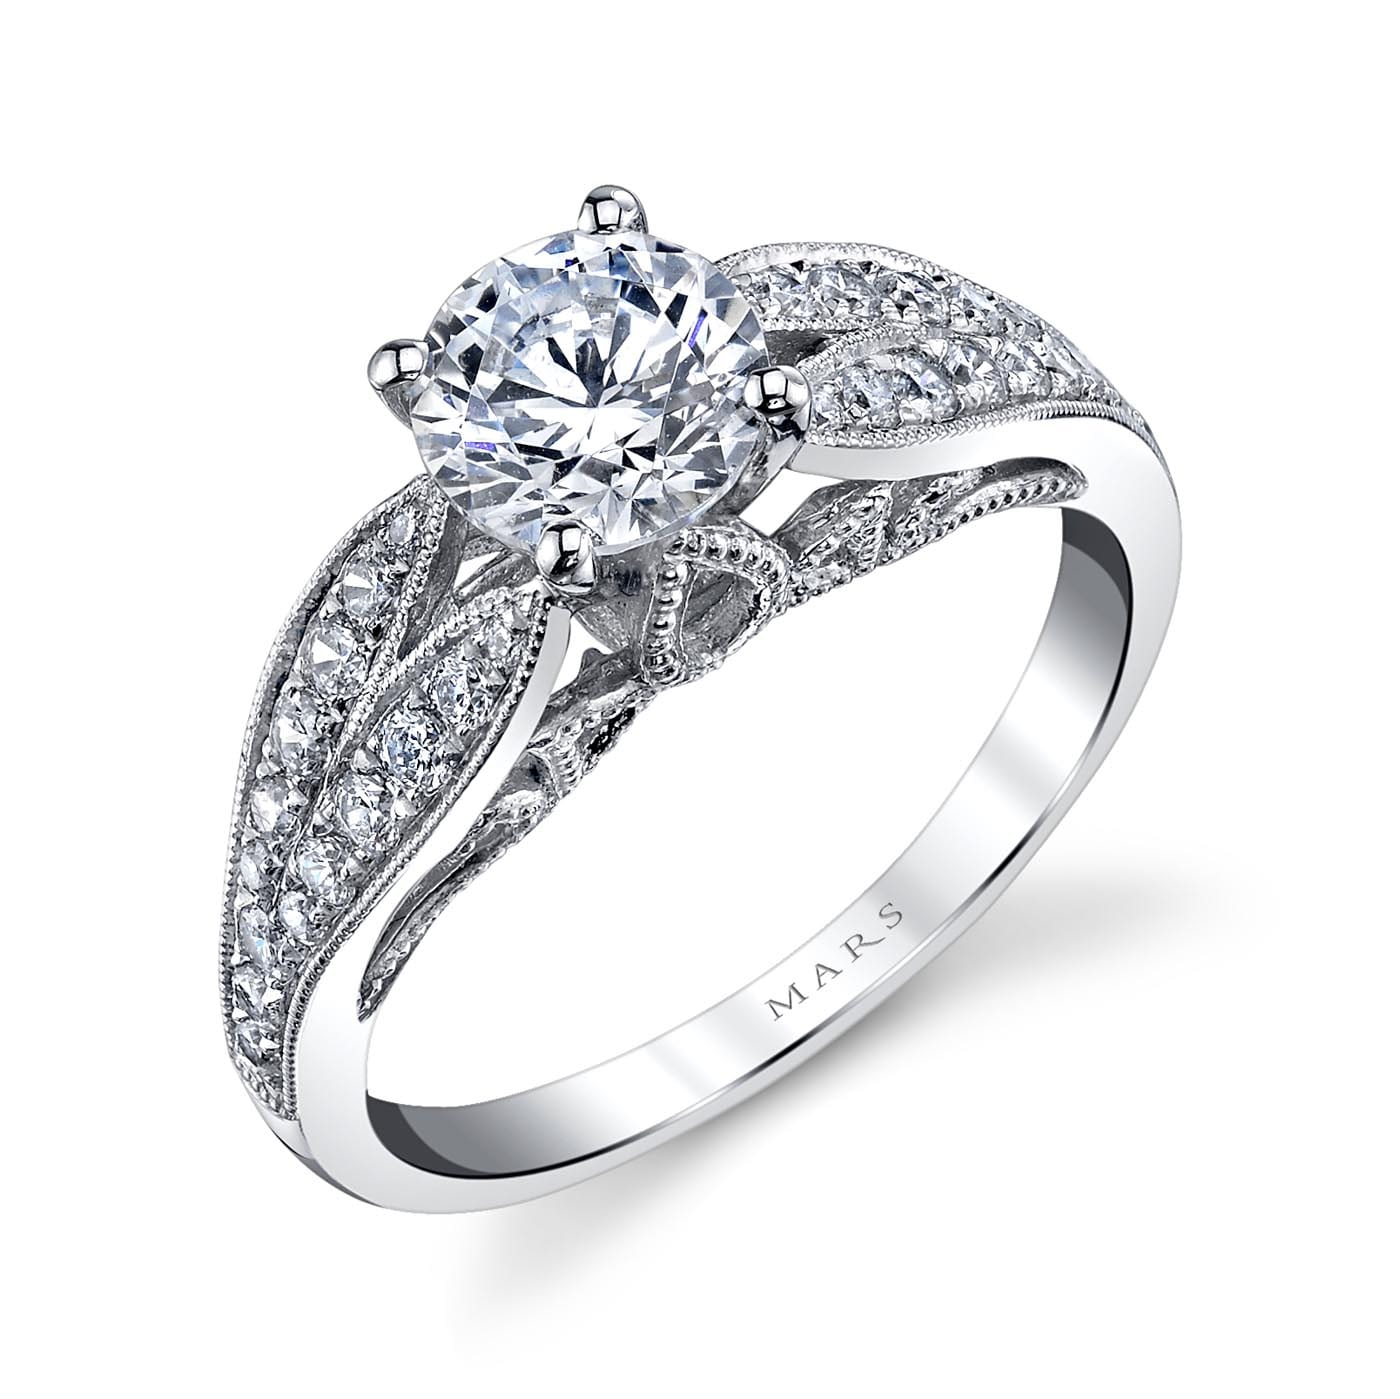 Floral Engagement RingStyle #: MARS 26003